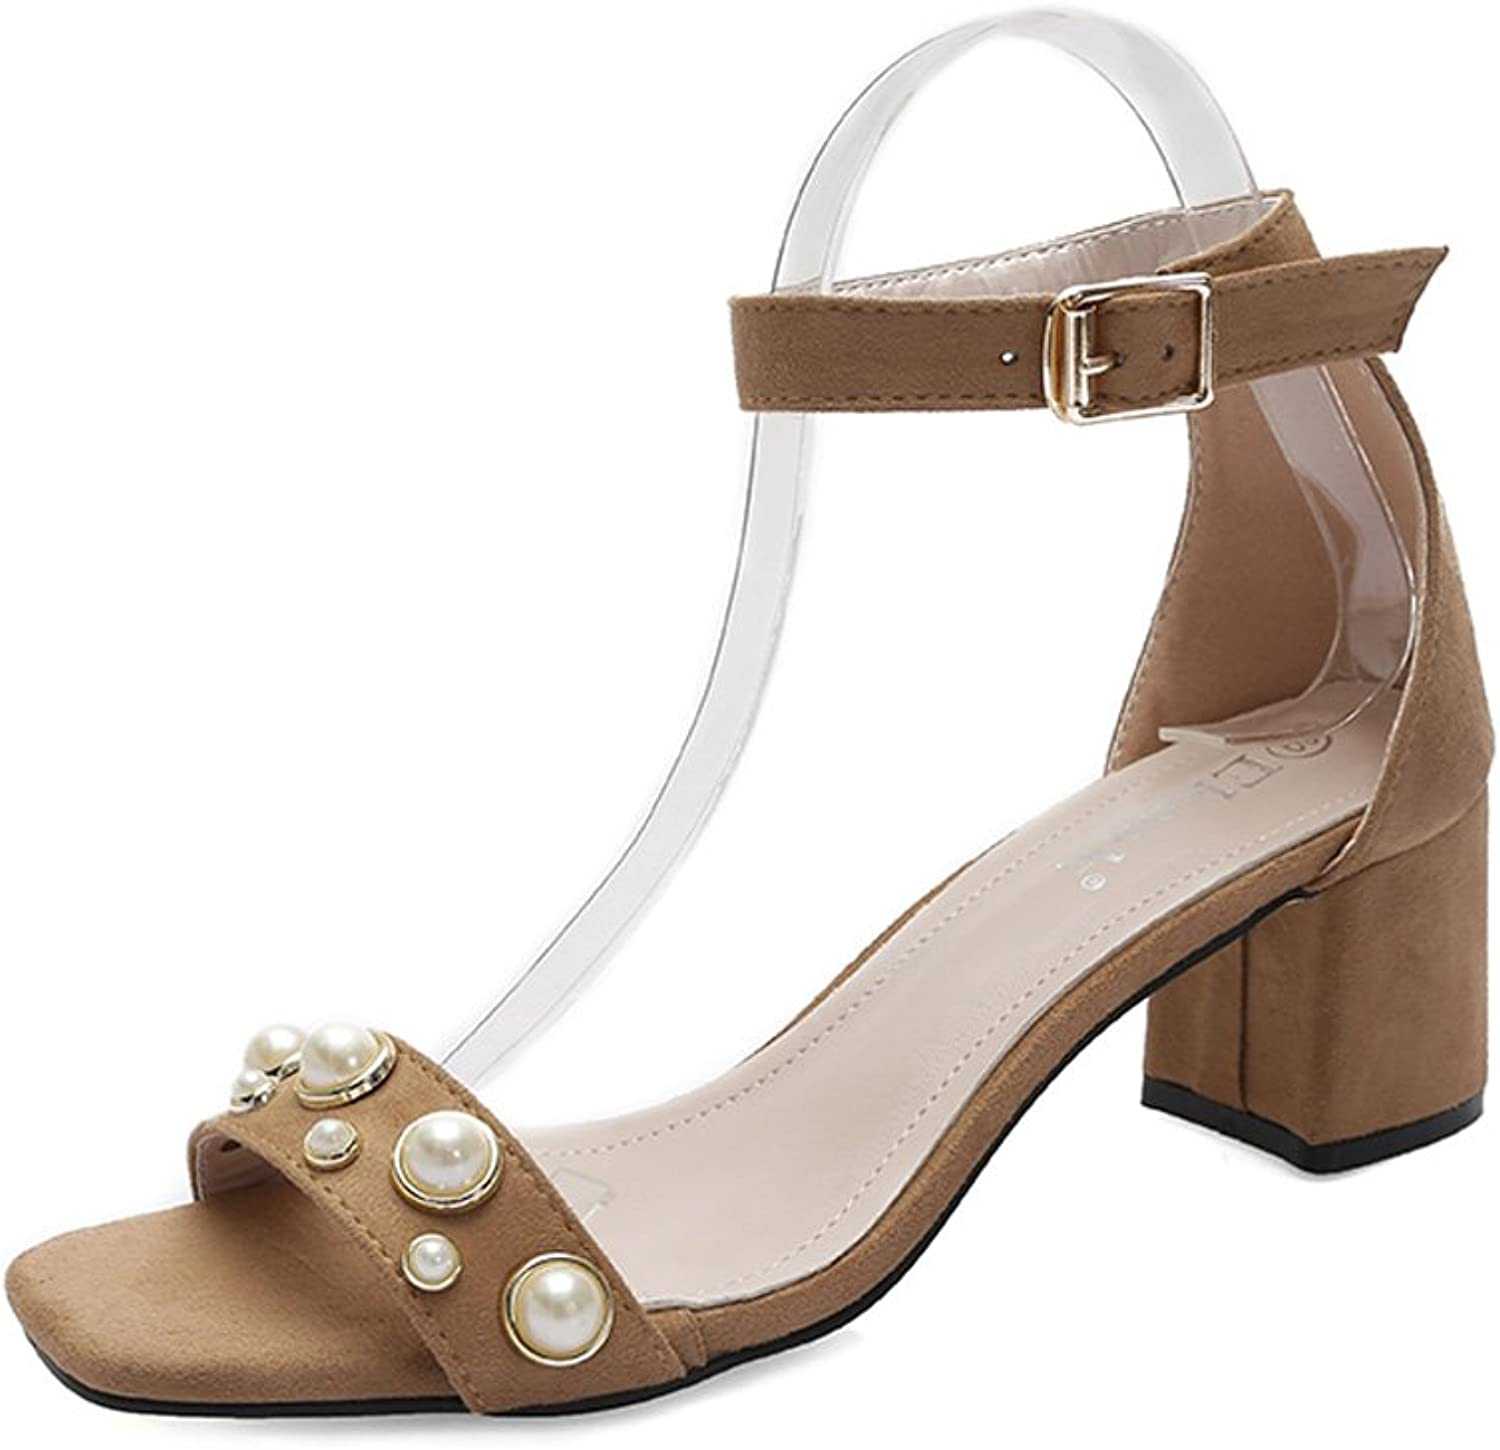 Genepeg Womens Sandals with Pearls Thick High Heels Gladiator Peep Toe Party Sandals Camel